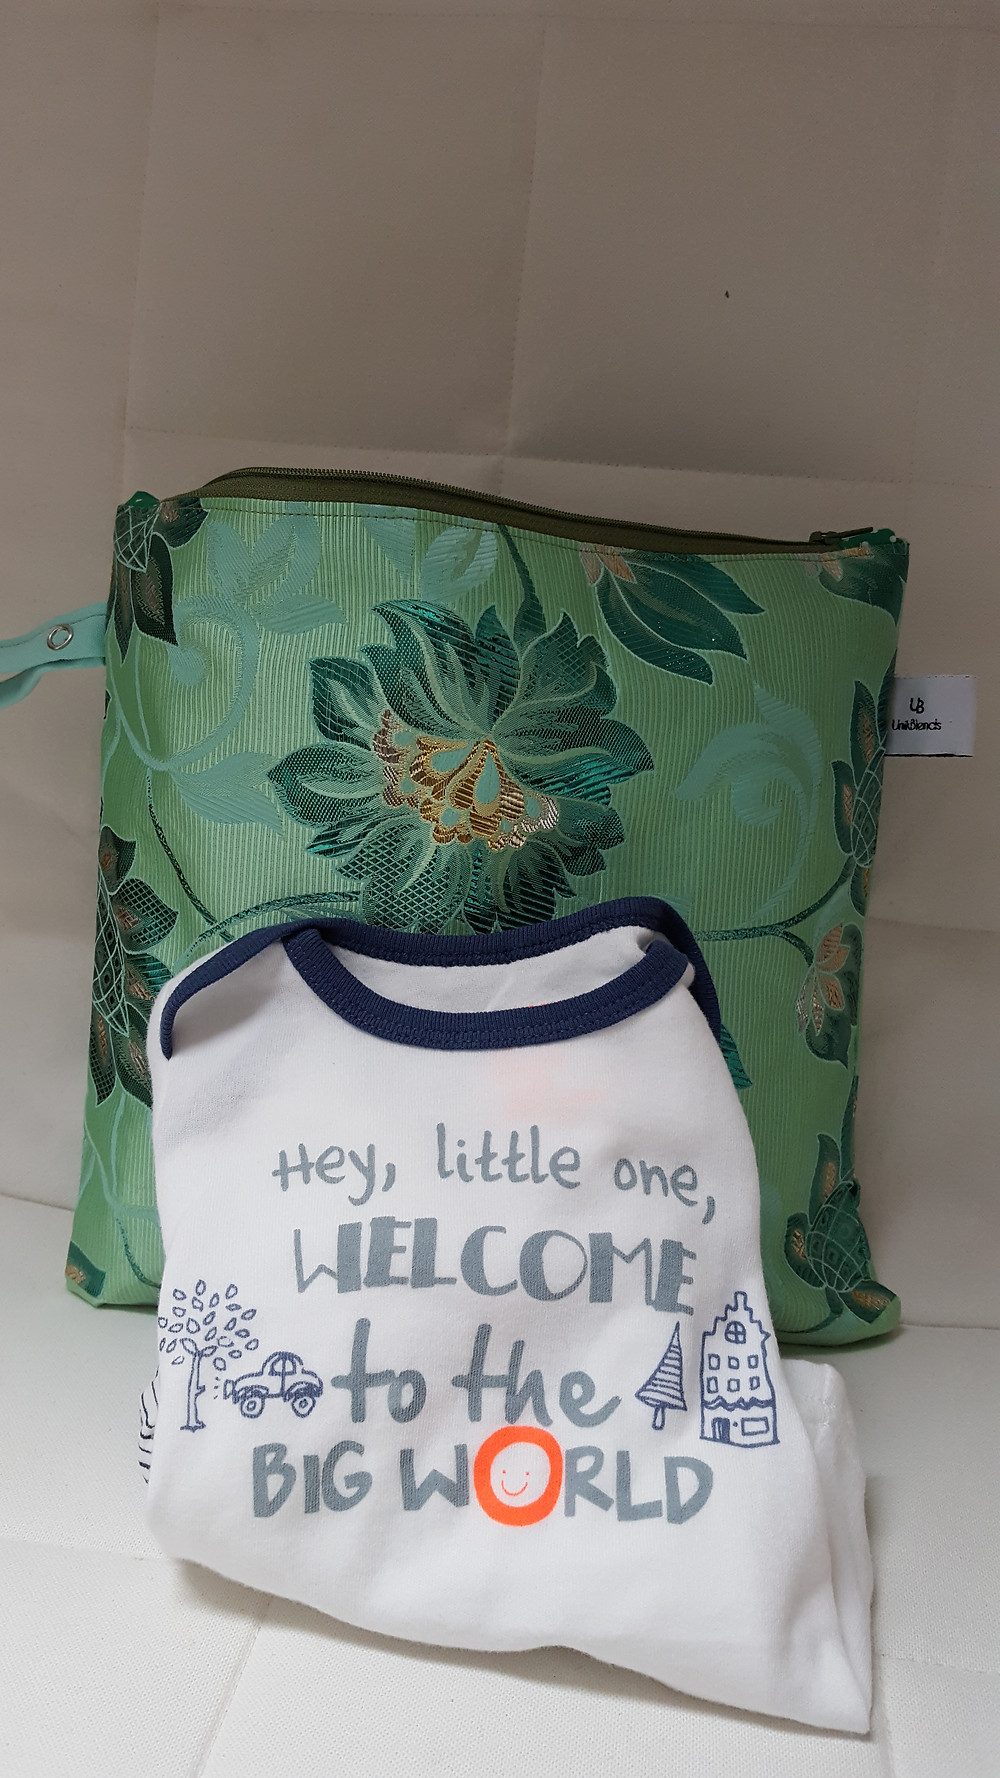 You can make a difference by donating baby products like this bag made from recycled fabrics to support Nina's work